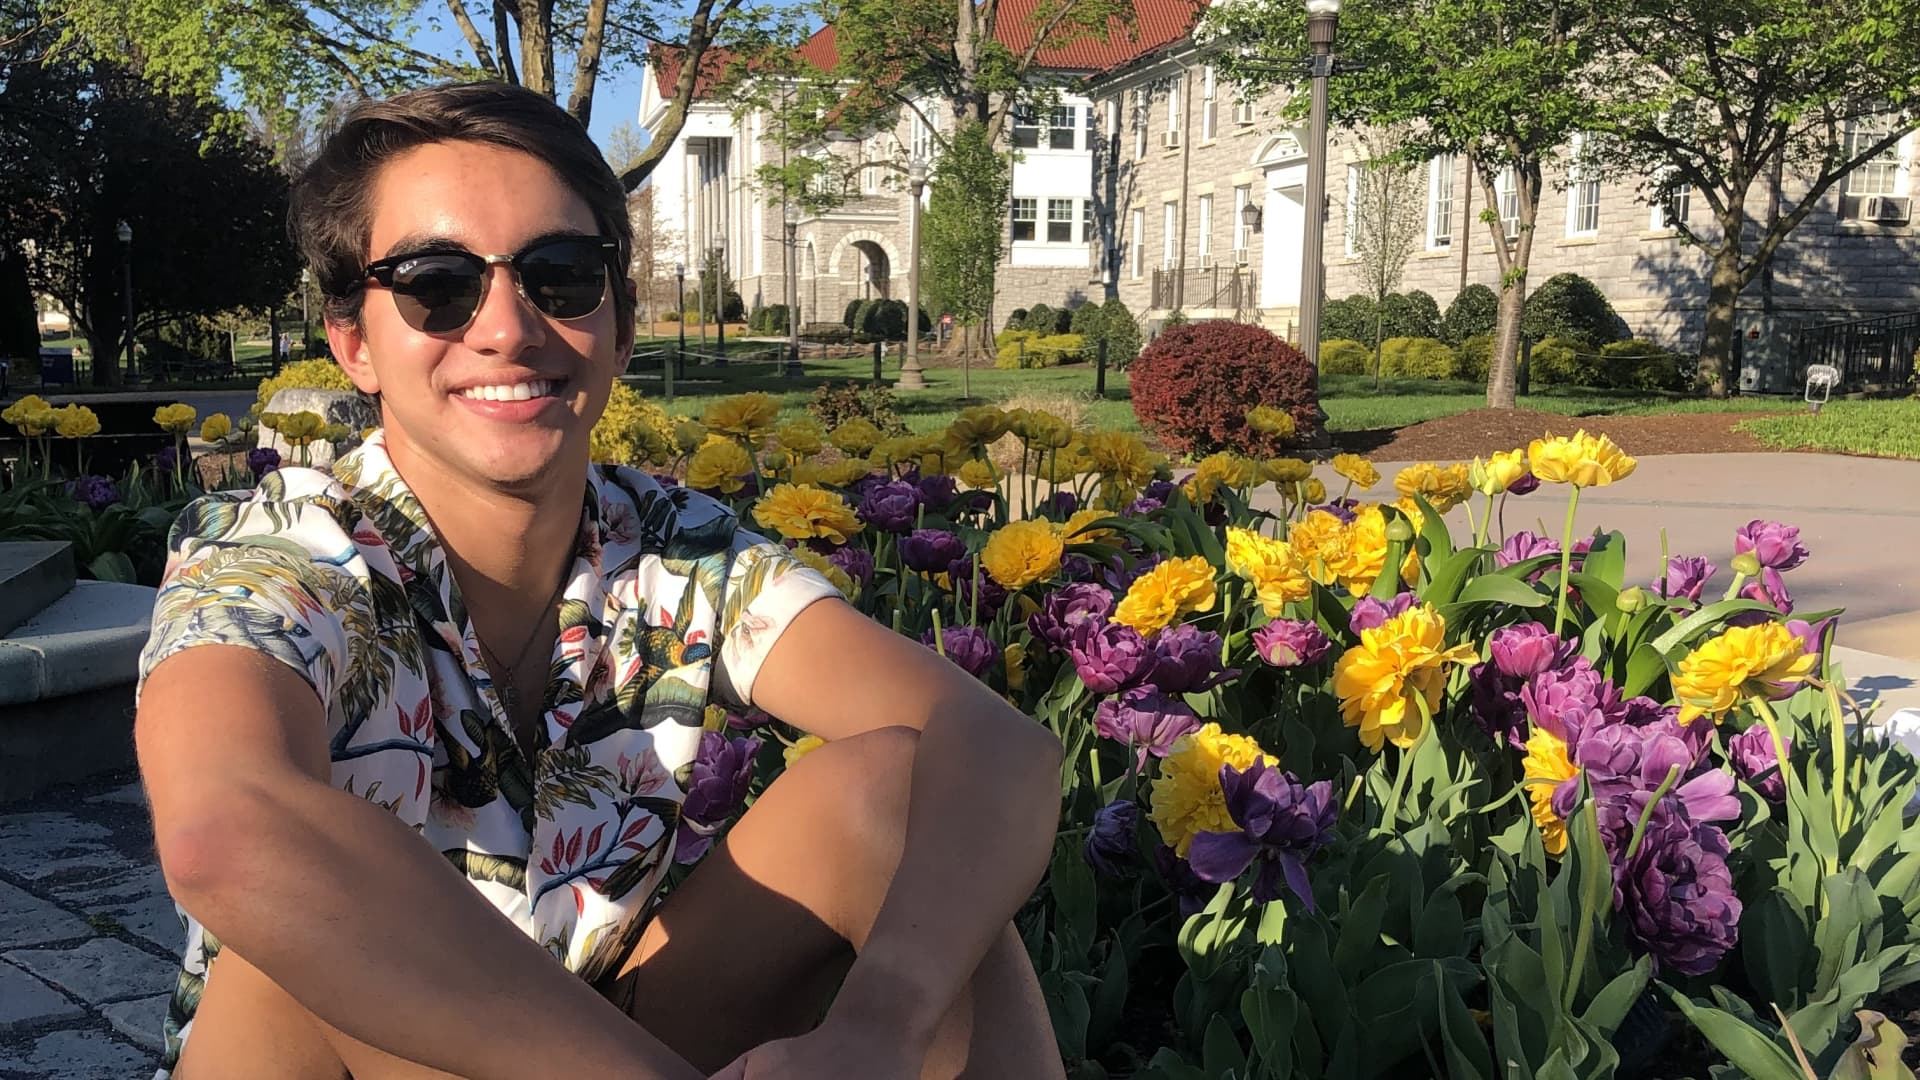 Adi Wineland, a senior at James Madison University, said he is still holding off on some major purchases like a meal plan and parking pass.